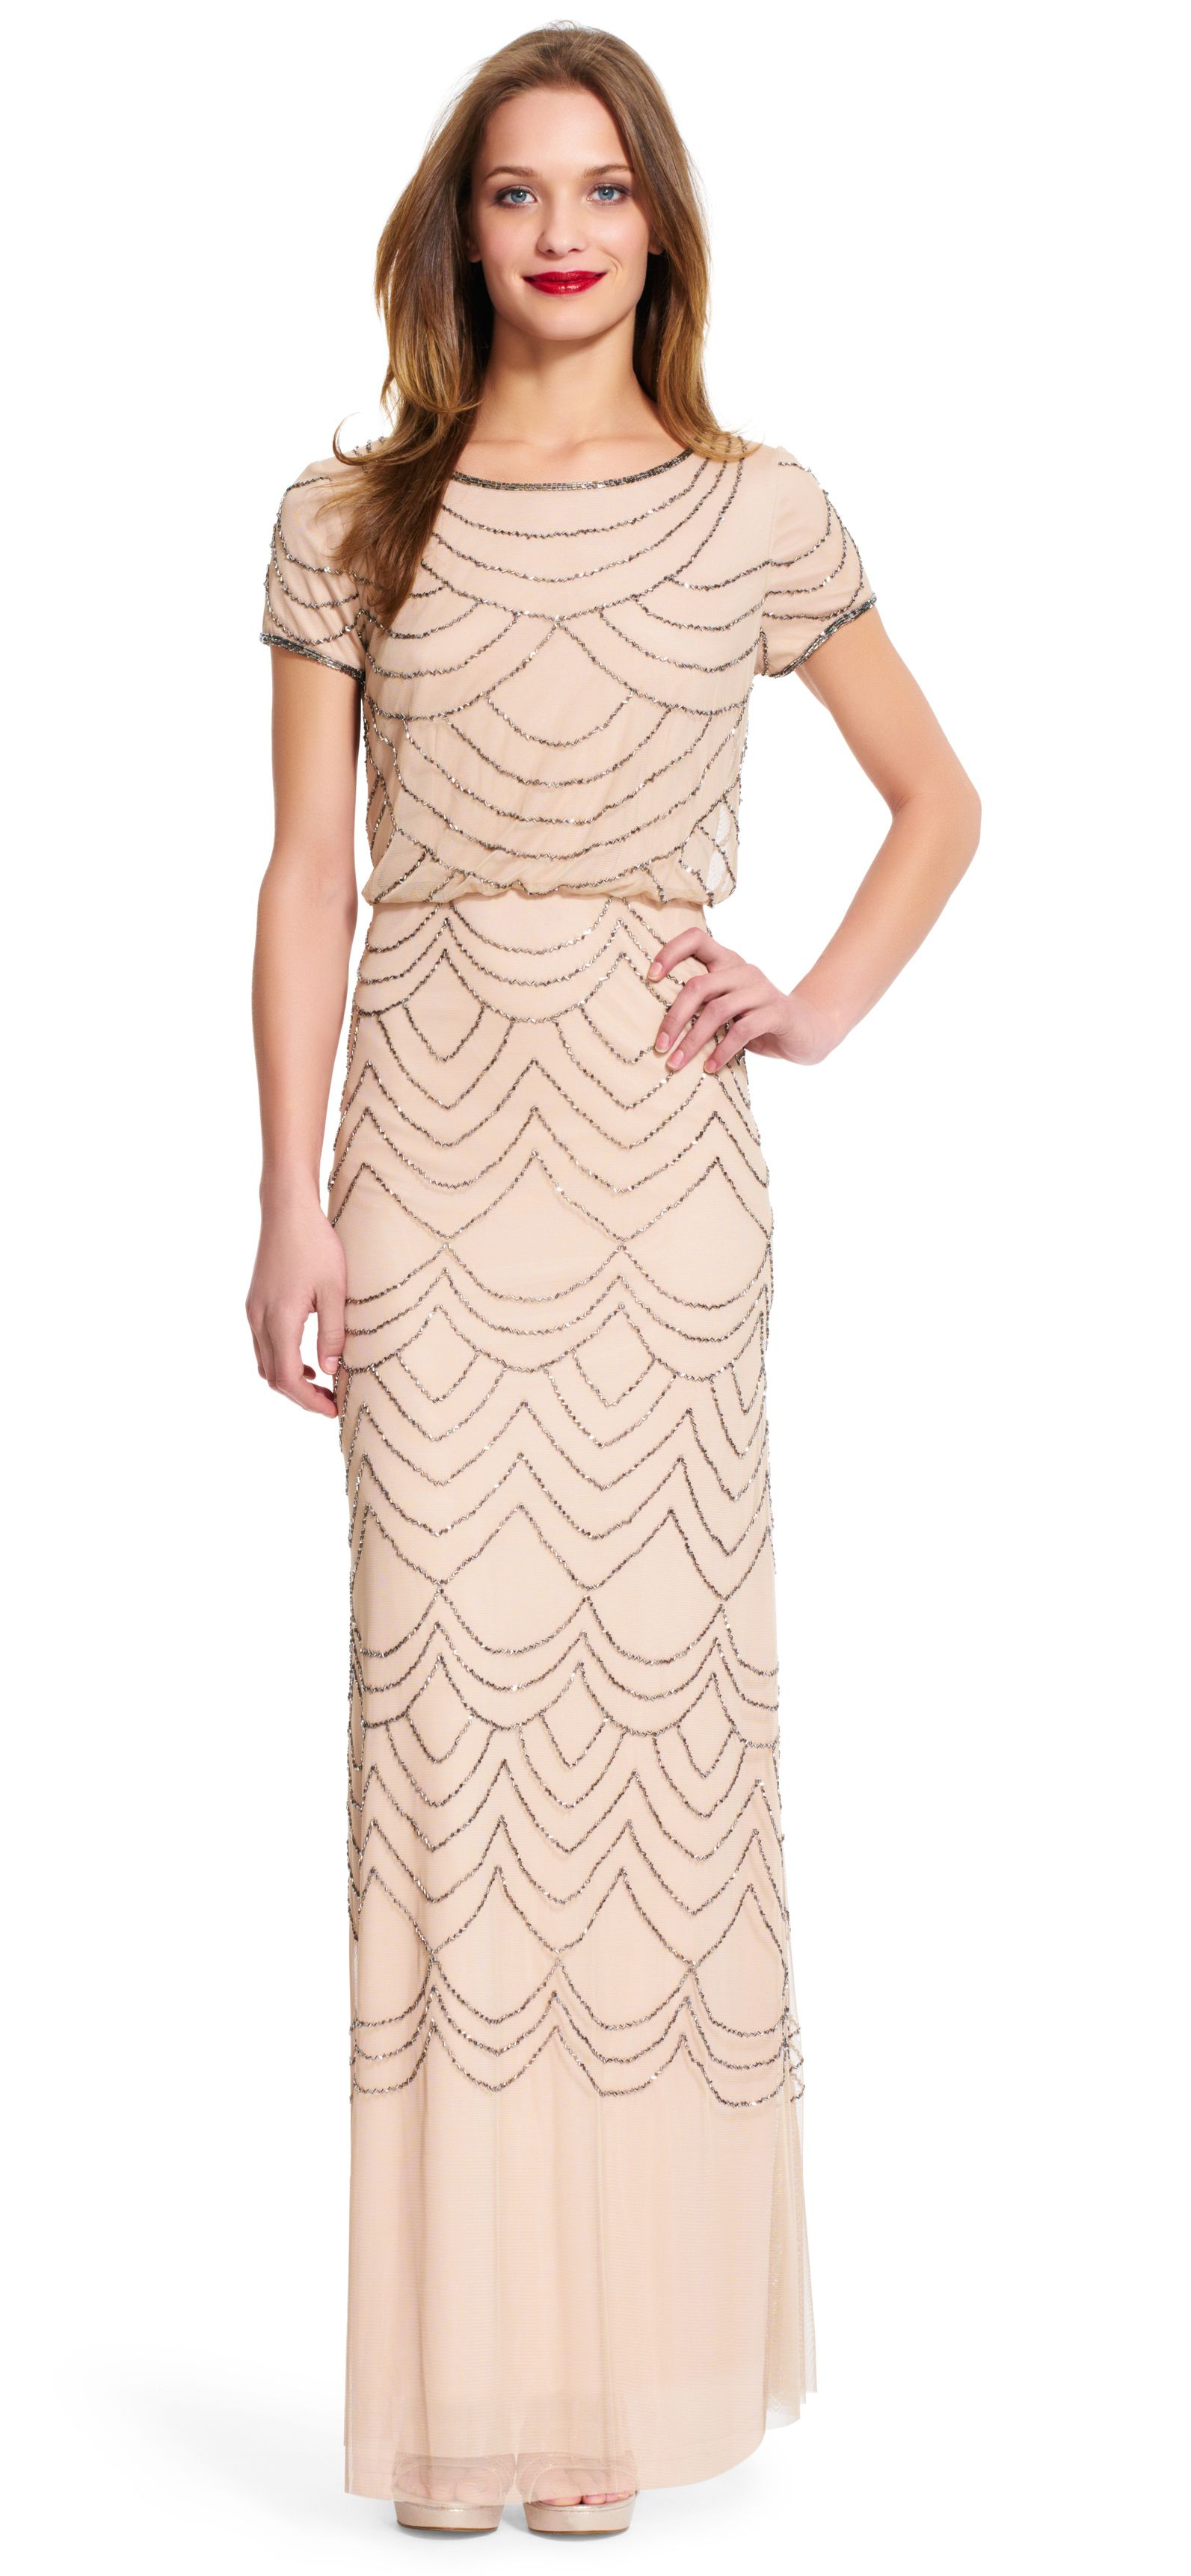 9150bc8dd Adrianna Papell Short Sleeve Beaded Blouson Gown | Classic charm and  effortless sparkle team up in this gorgeous evening gown featuring a beaded  blouson ...